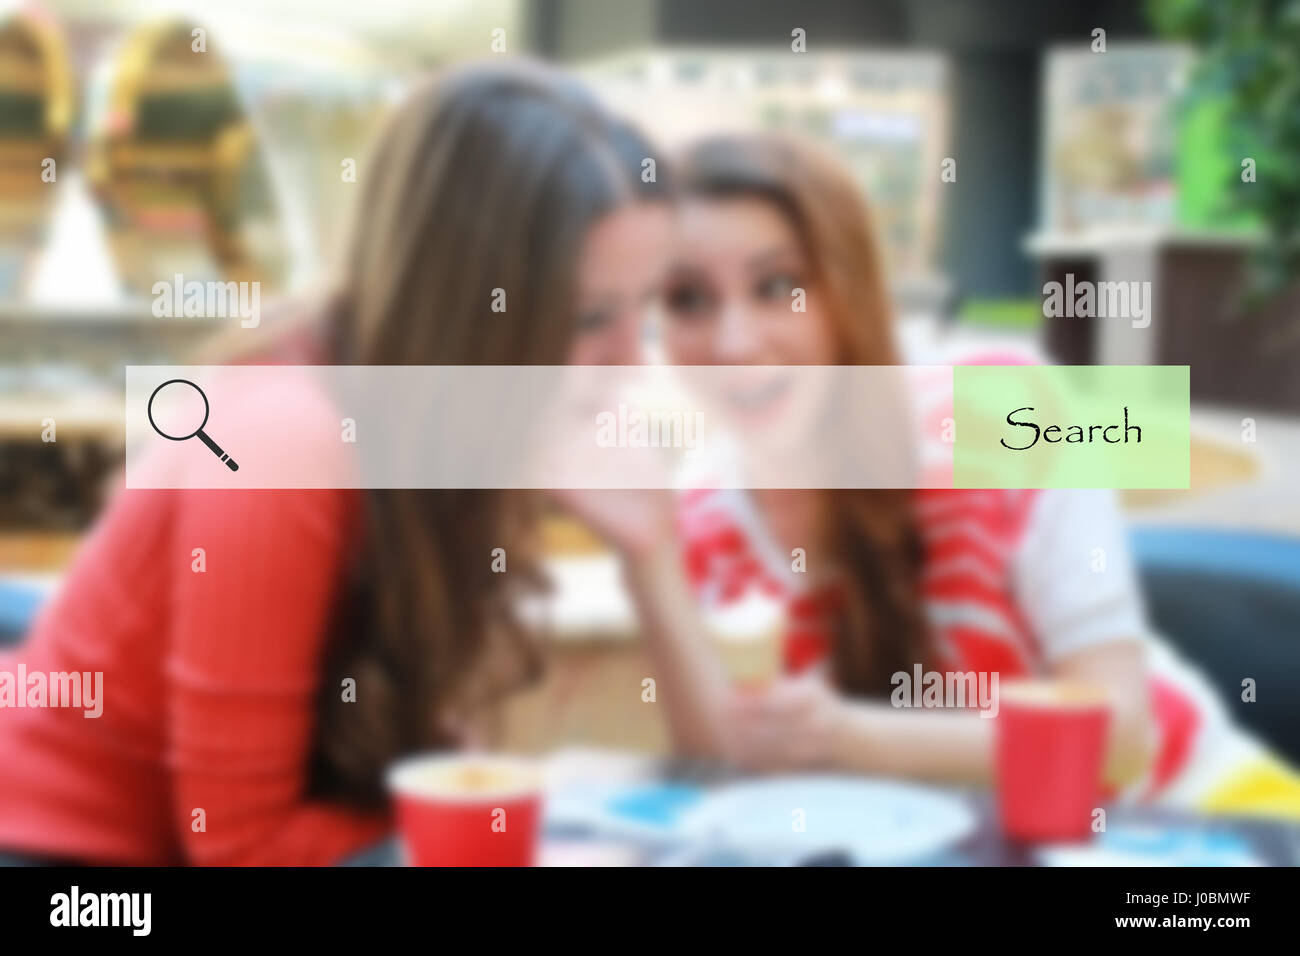 search bar on blurred background shopping young girls Stock Photo